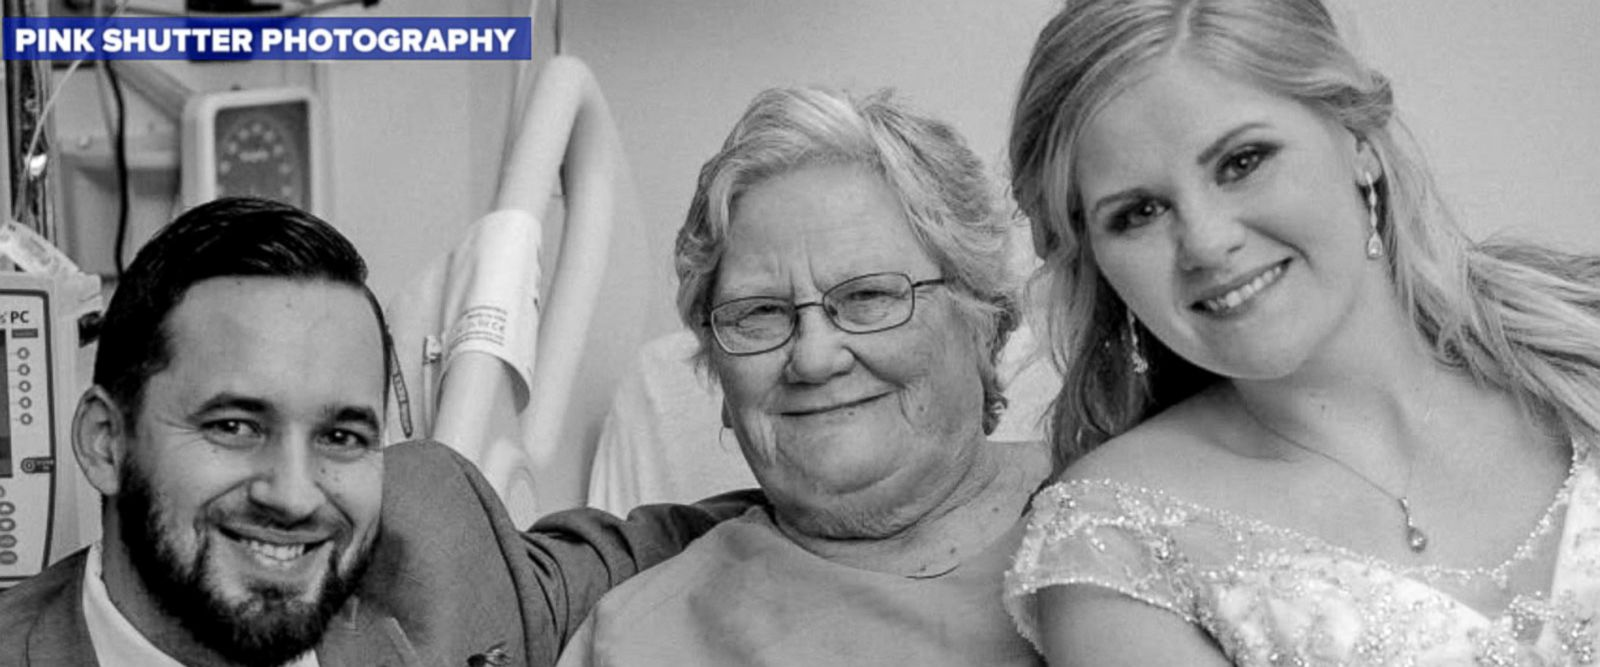 VIDEO: Bride, groom surprise grandmother at hospital